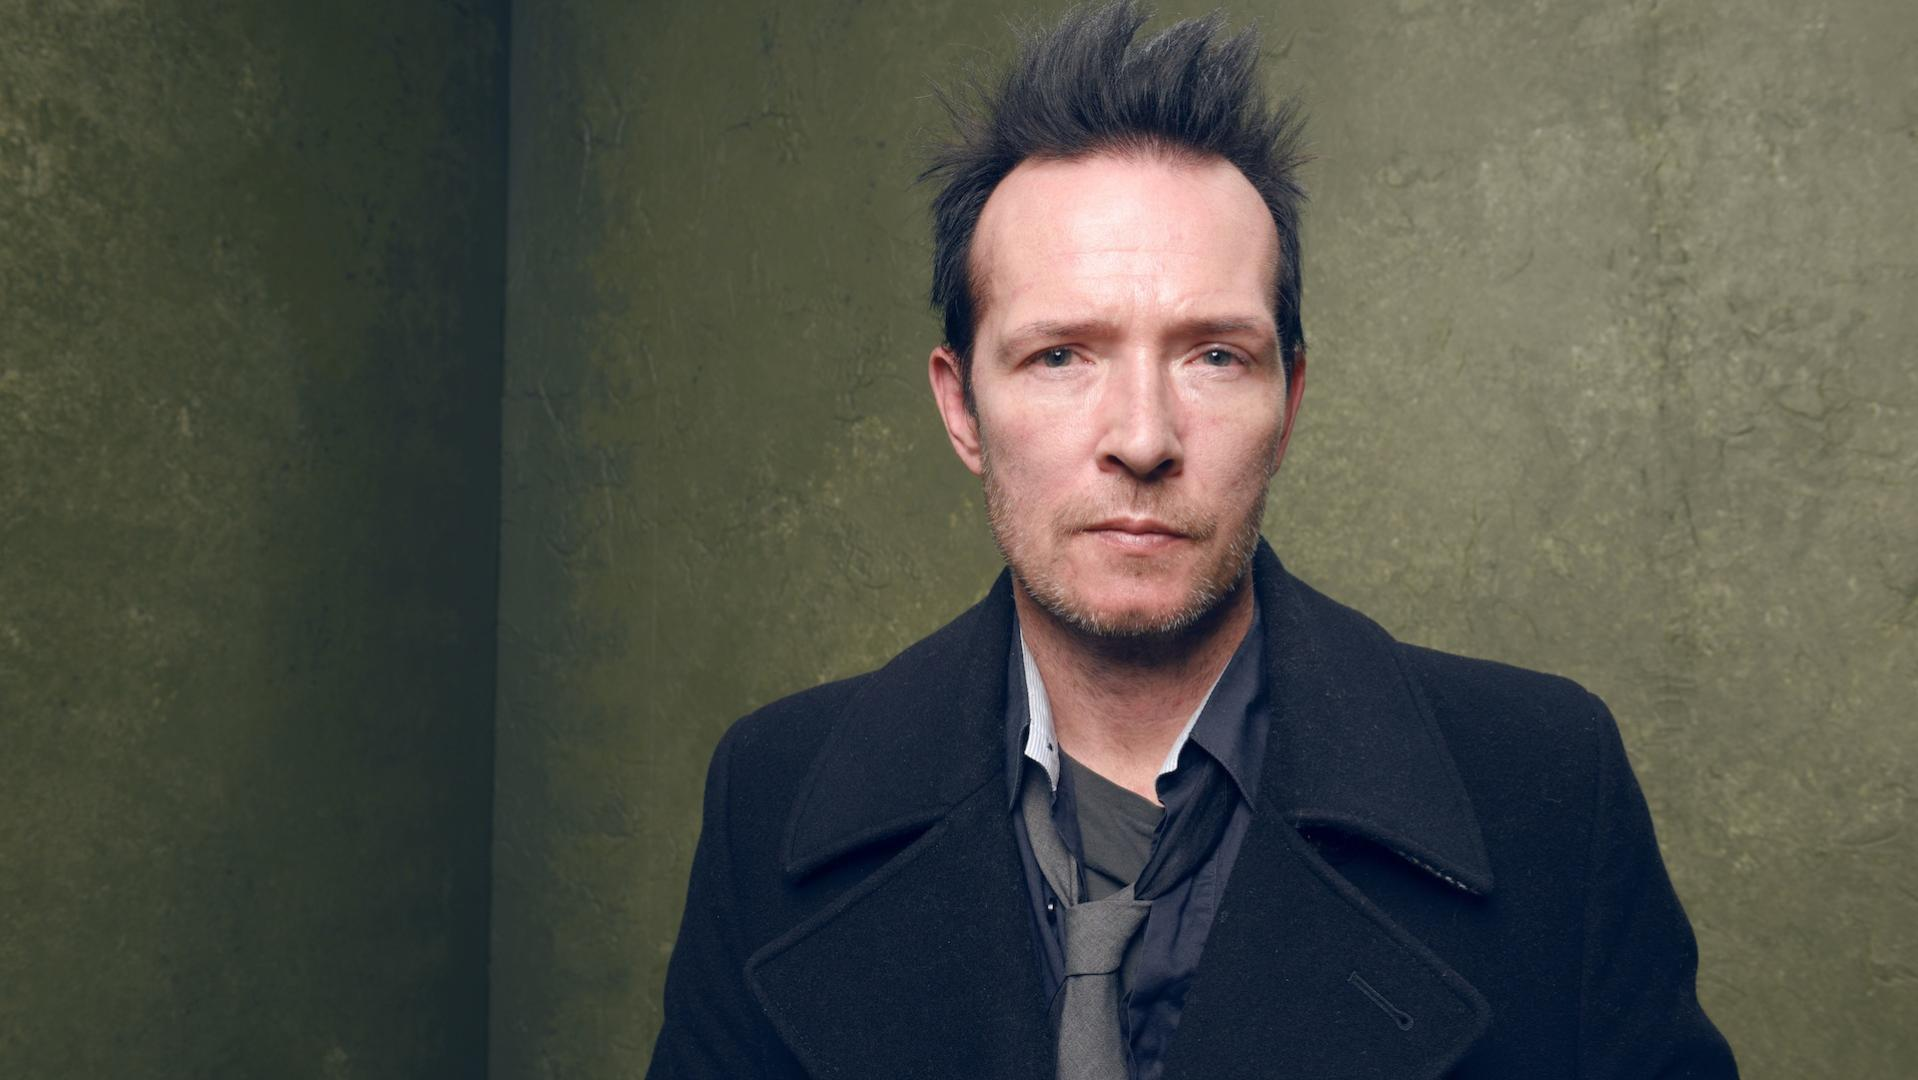 Scott Weiland, Stone Temple Pilots singer who struggled with addiction, dead at 48